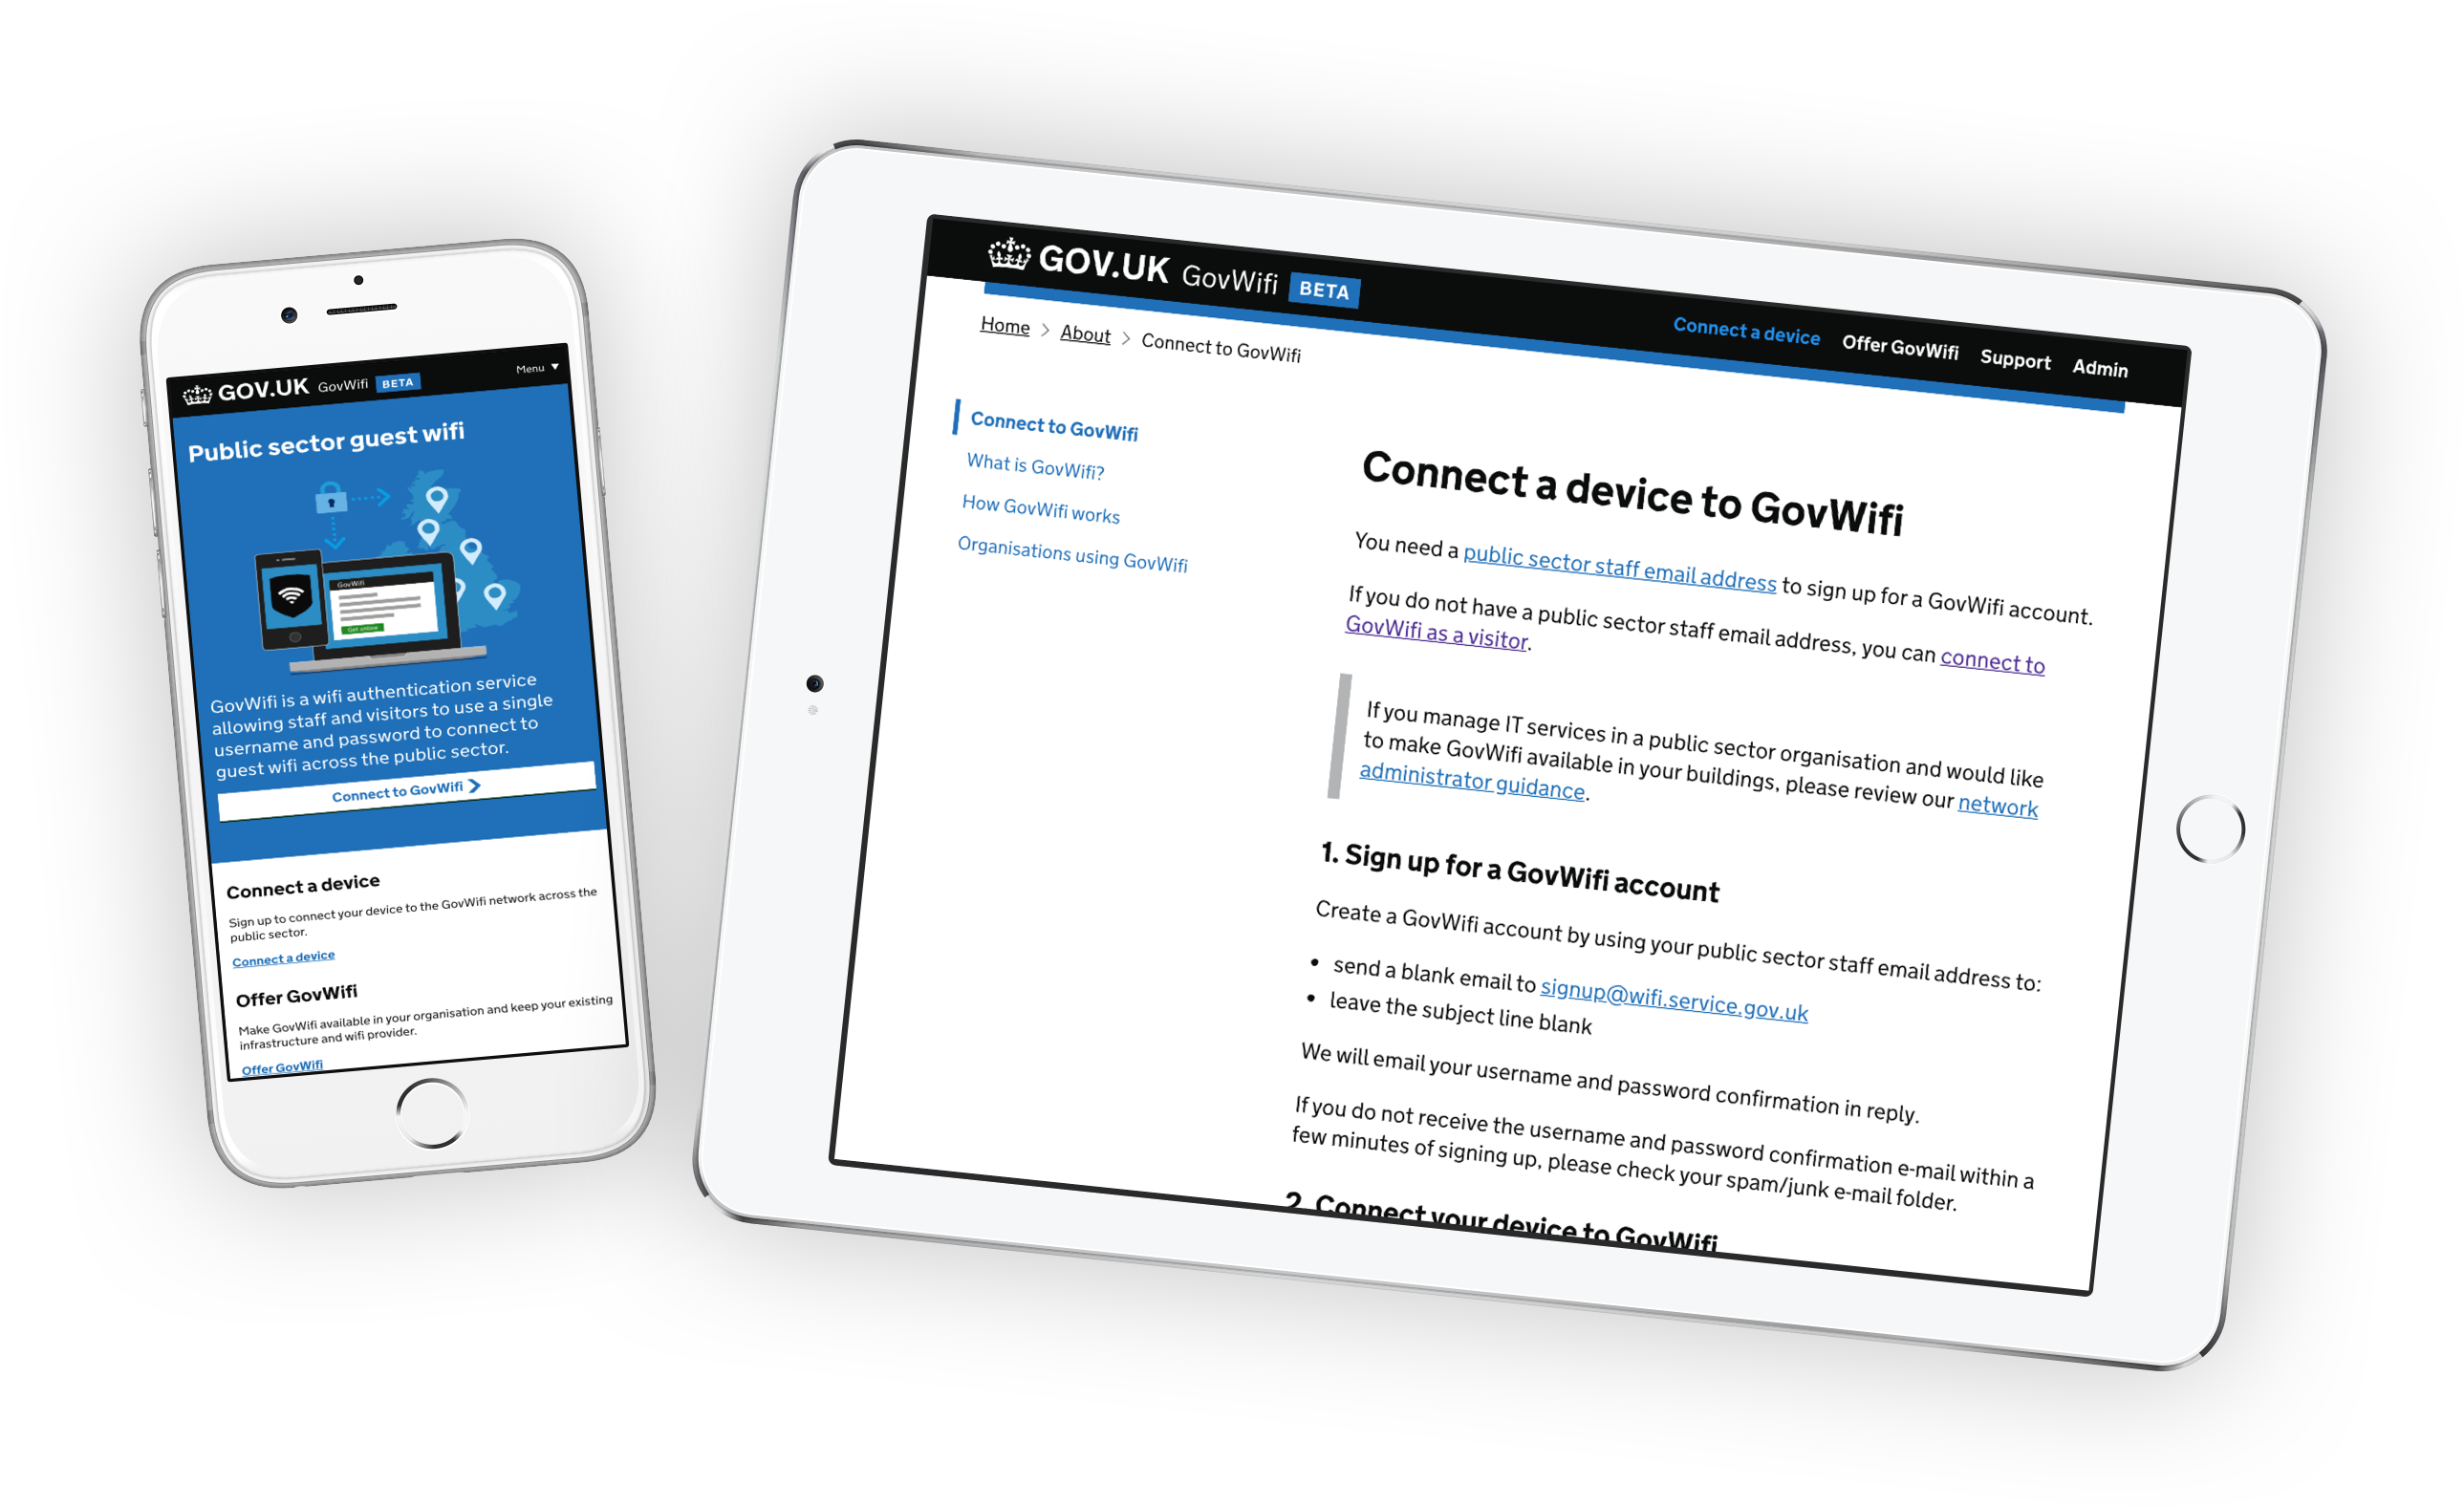 Govwifi tablet and phone